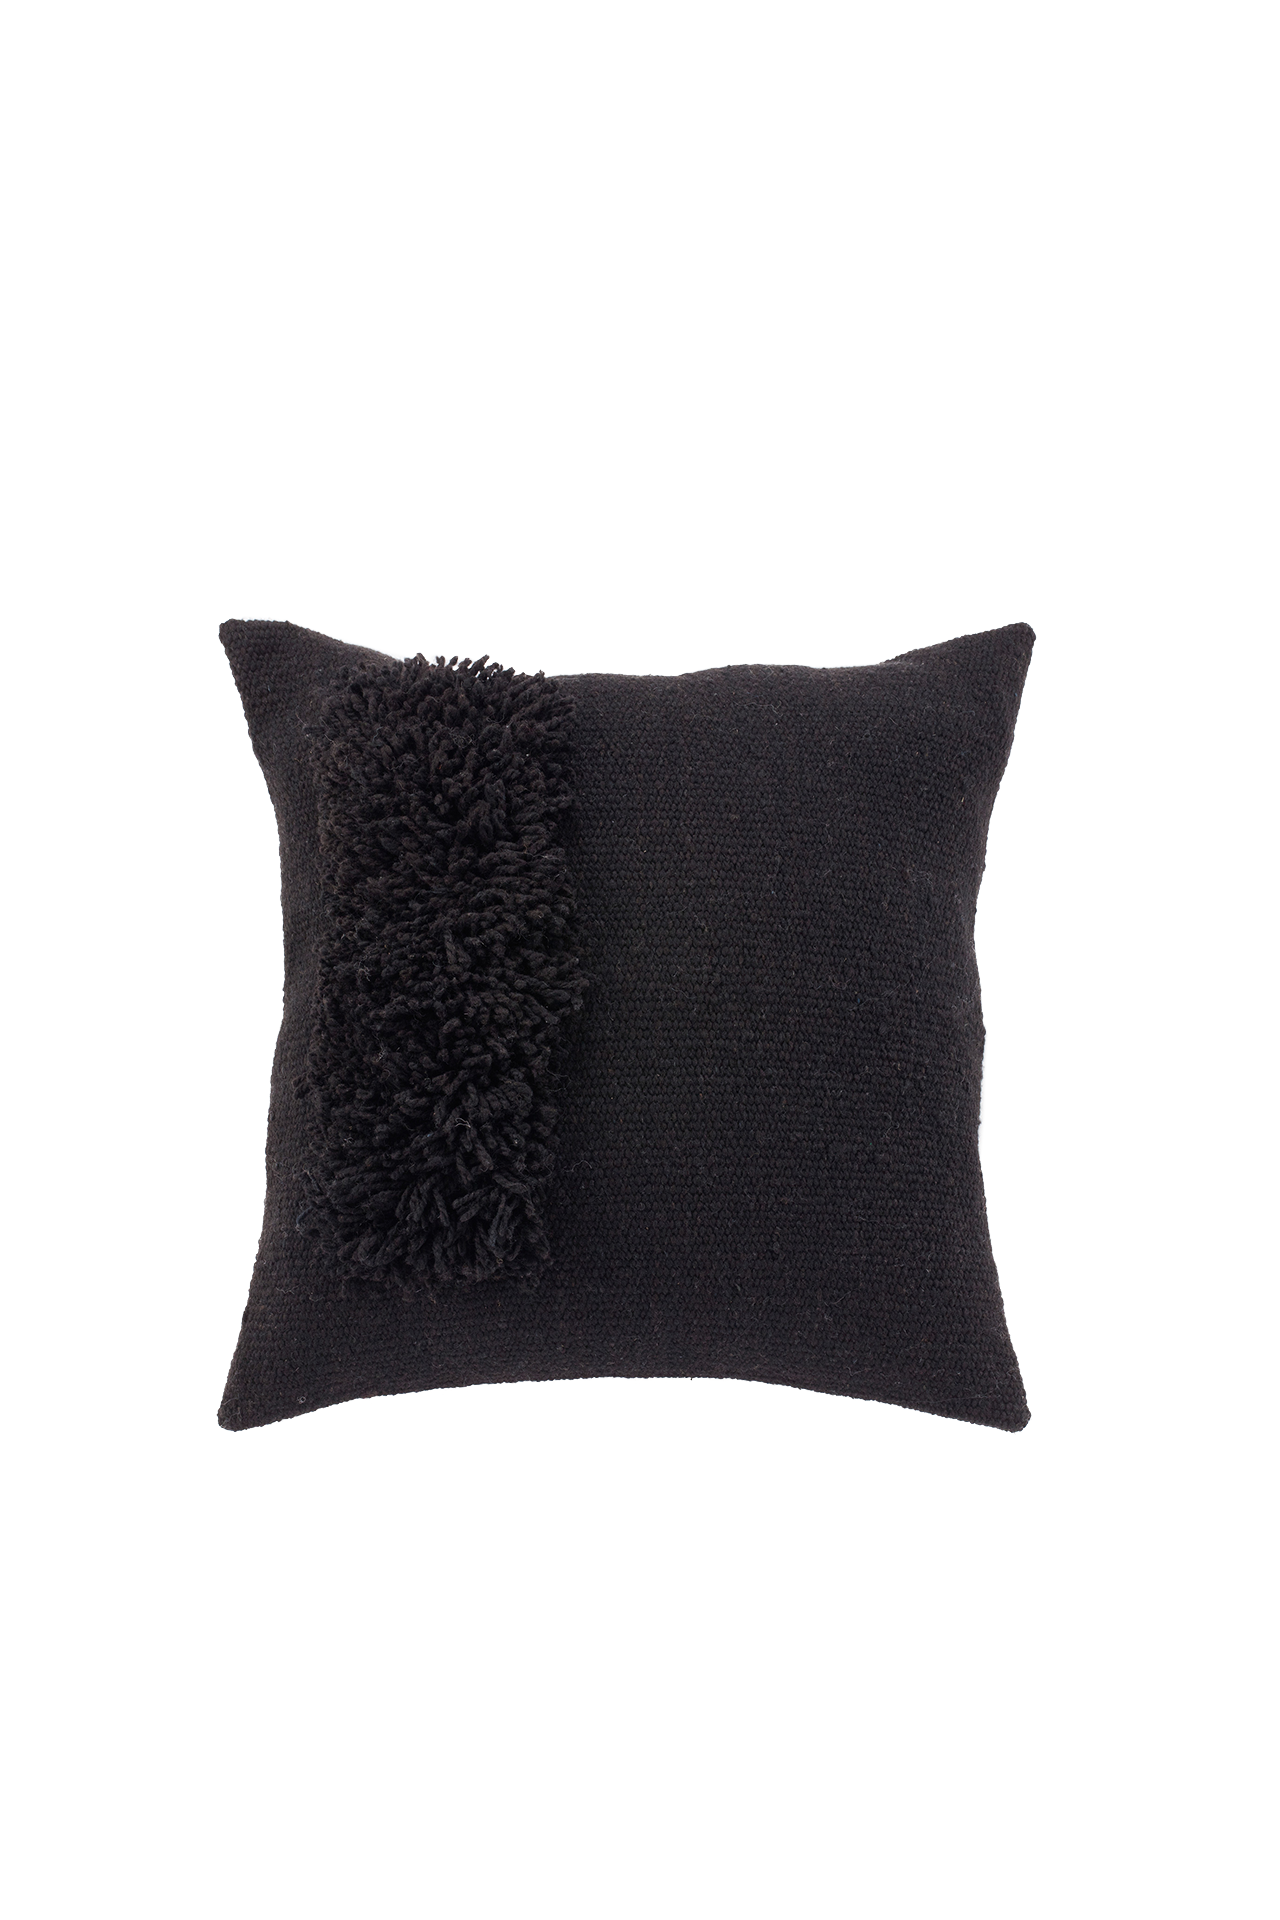 Zona Handwoven Pillow